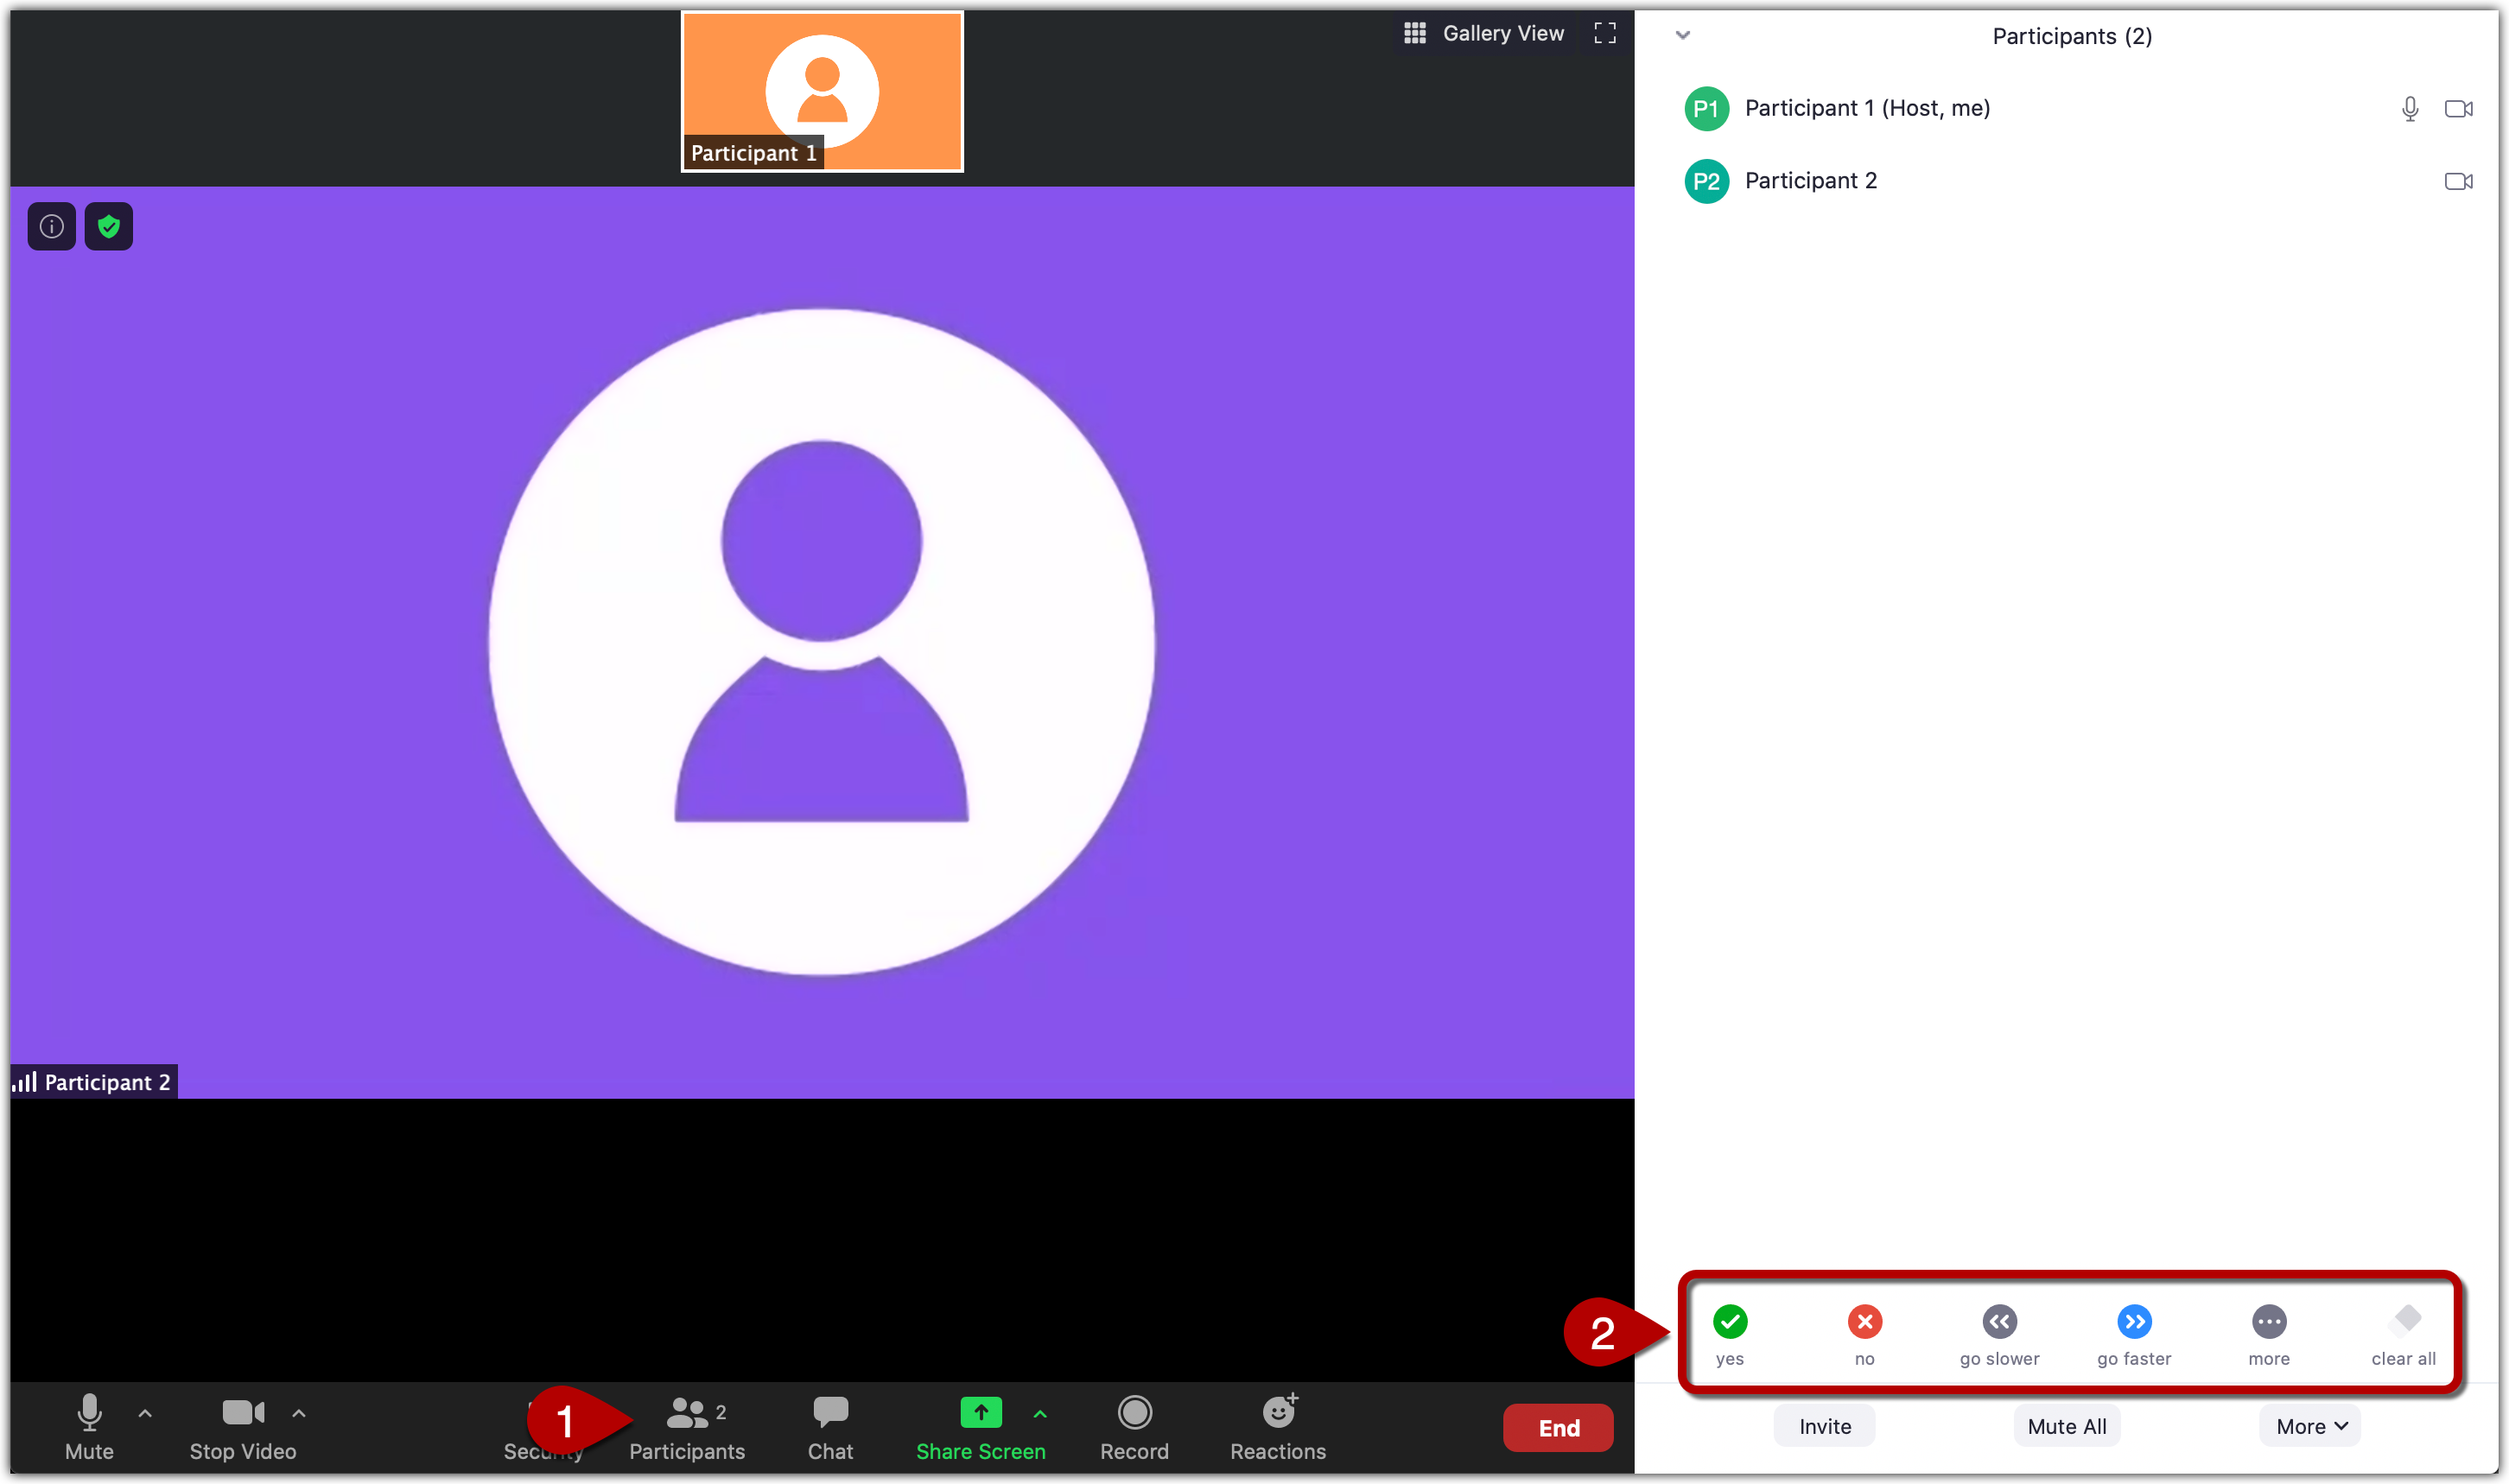 """Zoom meeting window with participant window open. The """"1"""" marks the """"participant"""" icon on the zoom controls toolbar and the """"2"""" marks the nonverbal feedback buttons available in the bottom of the participants window (""""yes,"""" """"no,"""" """"go slower,"""" """"go faster,"""" and a """"more"""" button for more options)."""